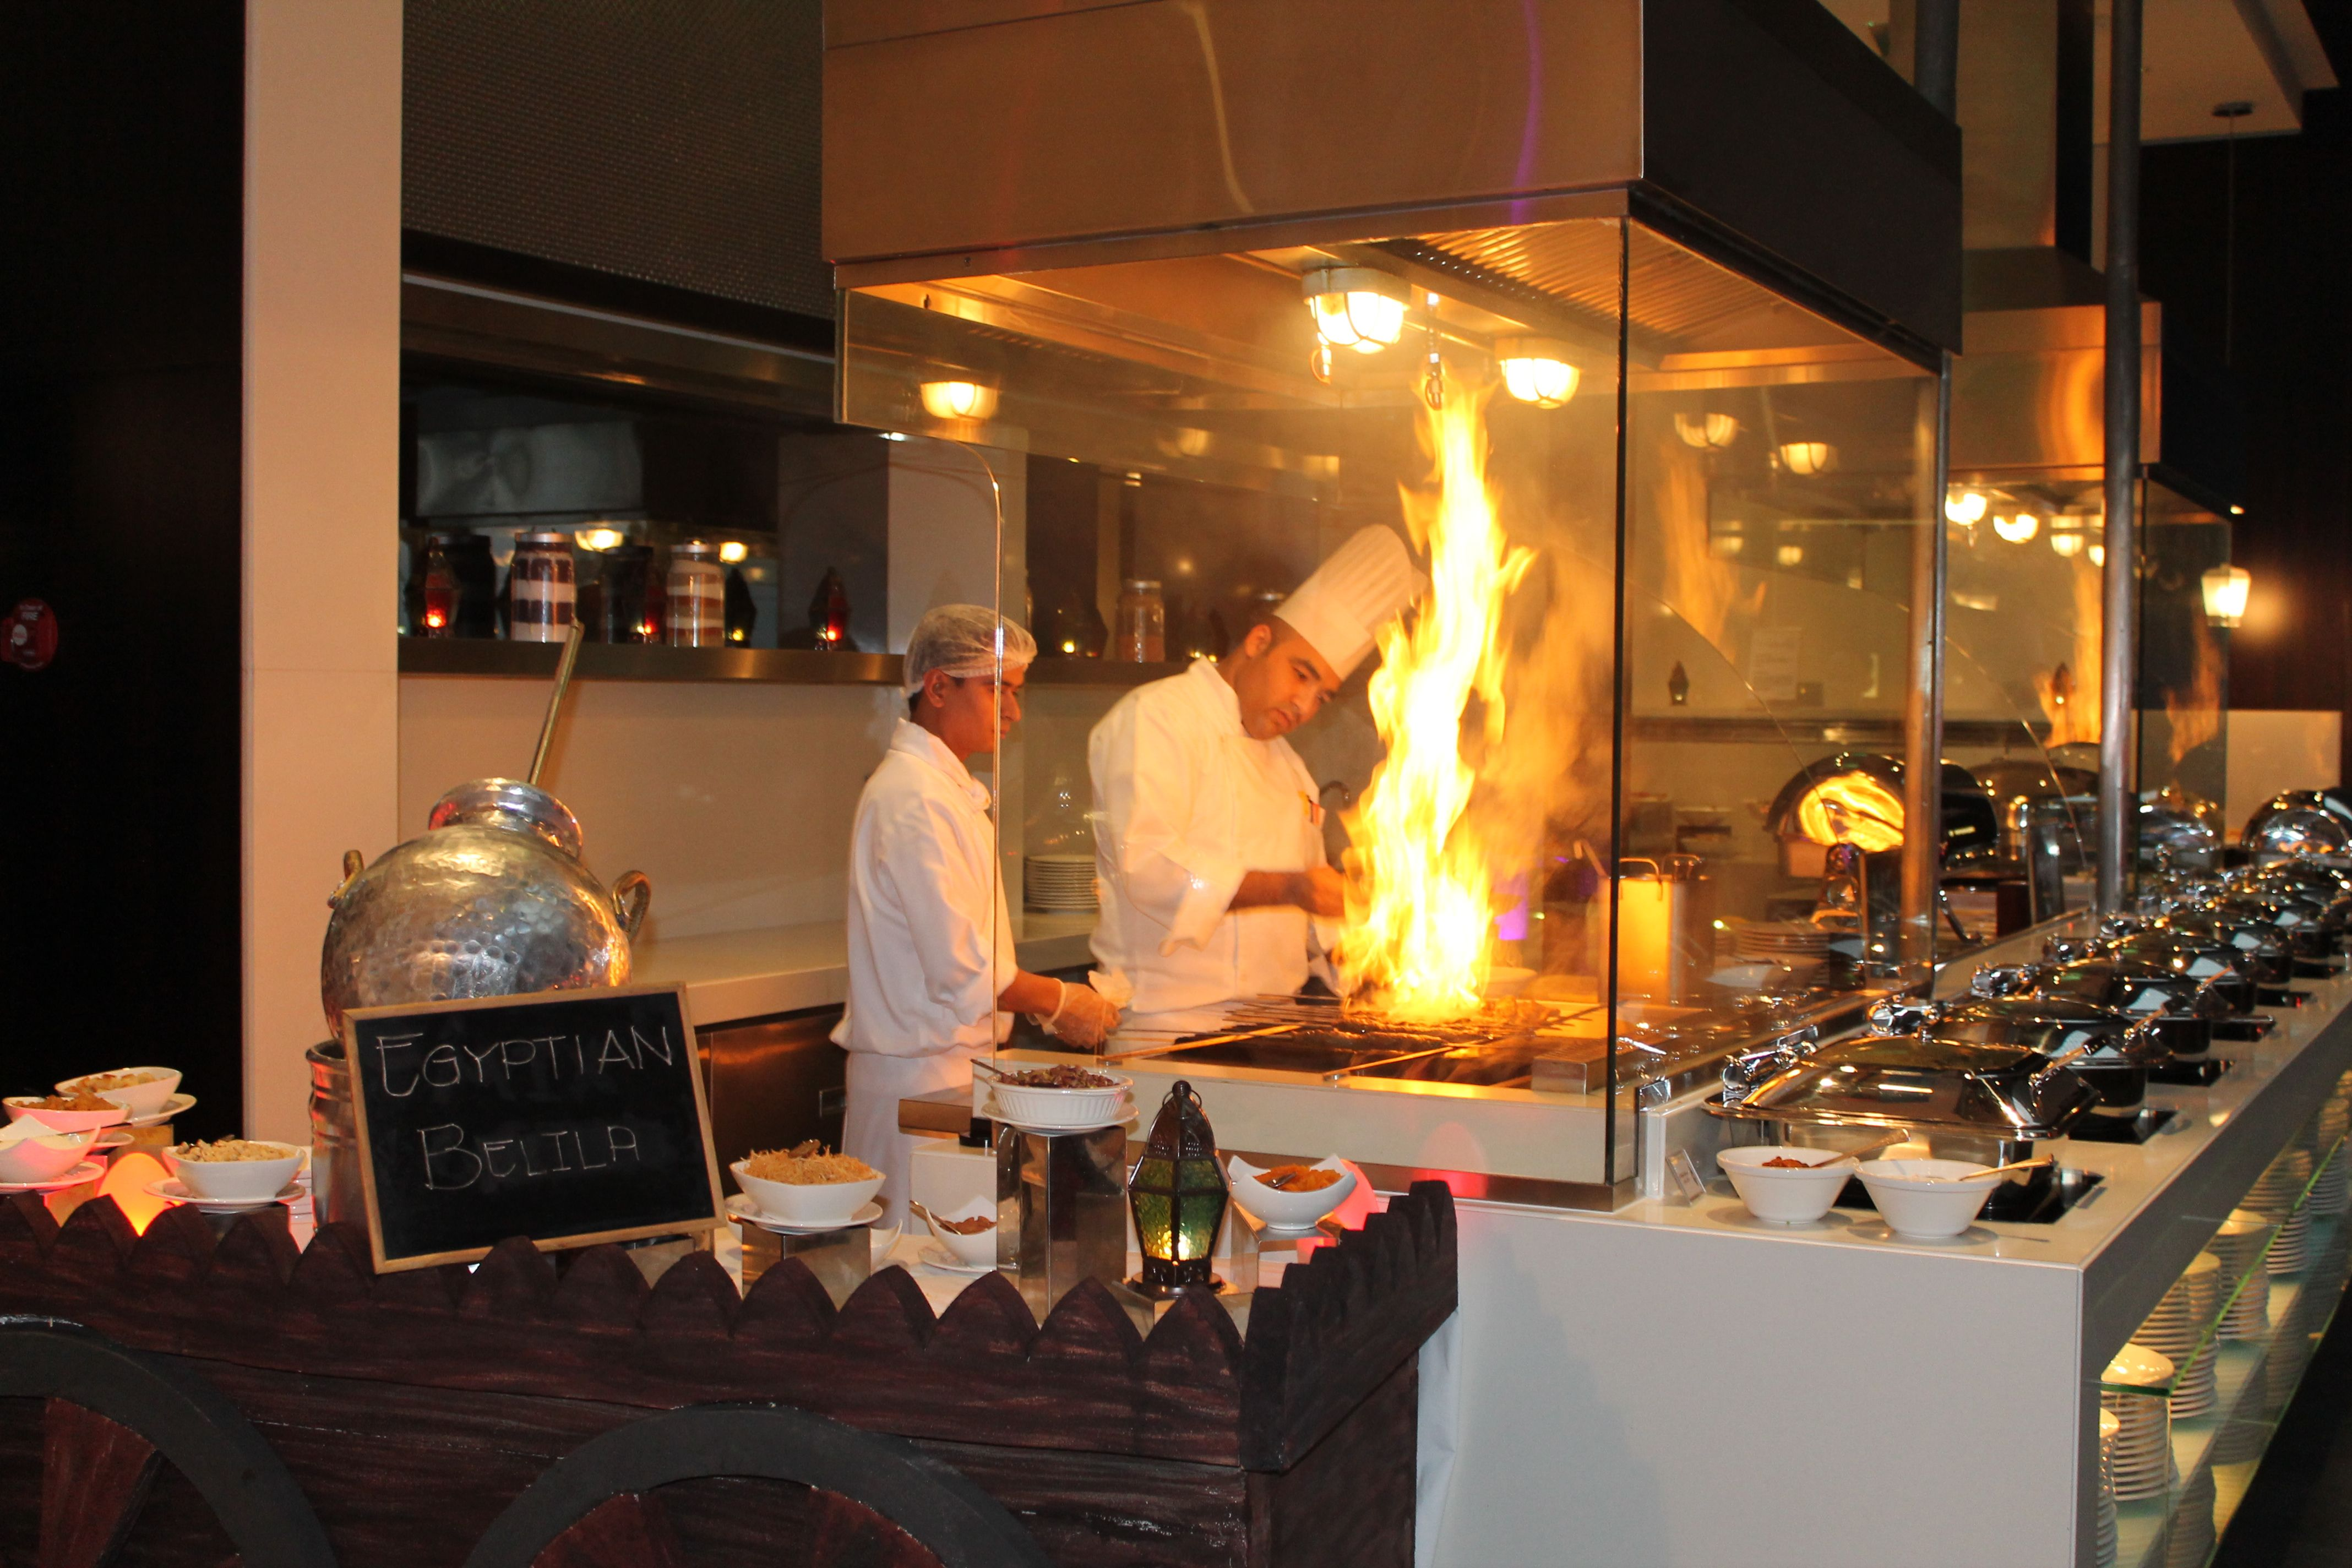 the live cooking station with Chef Ahmed